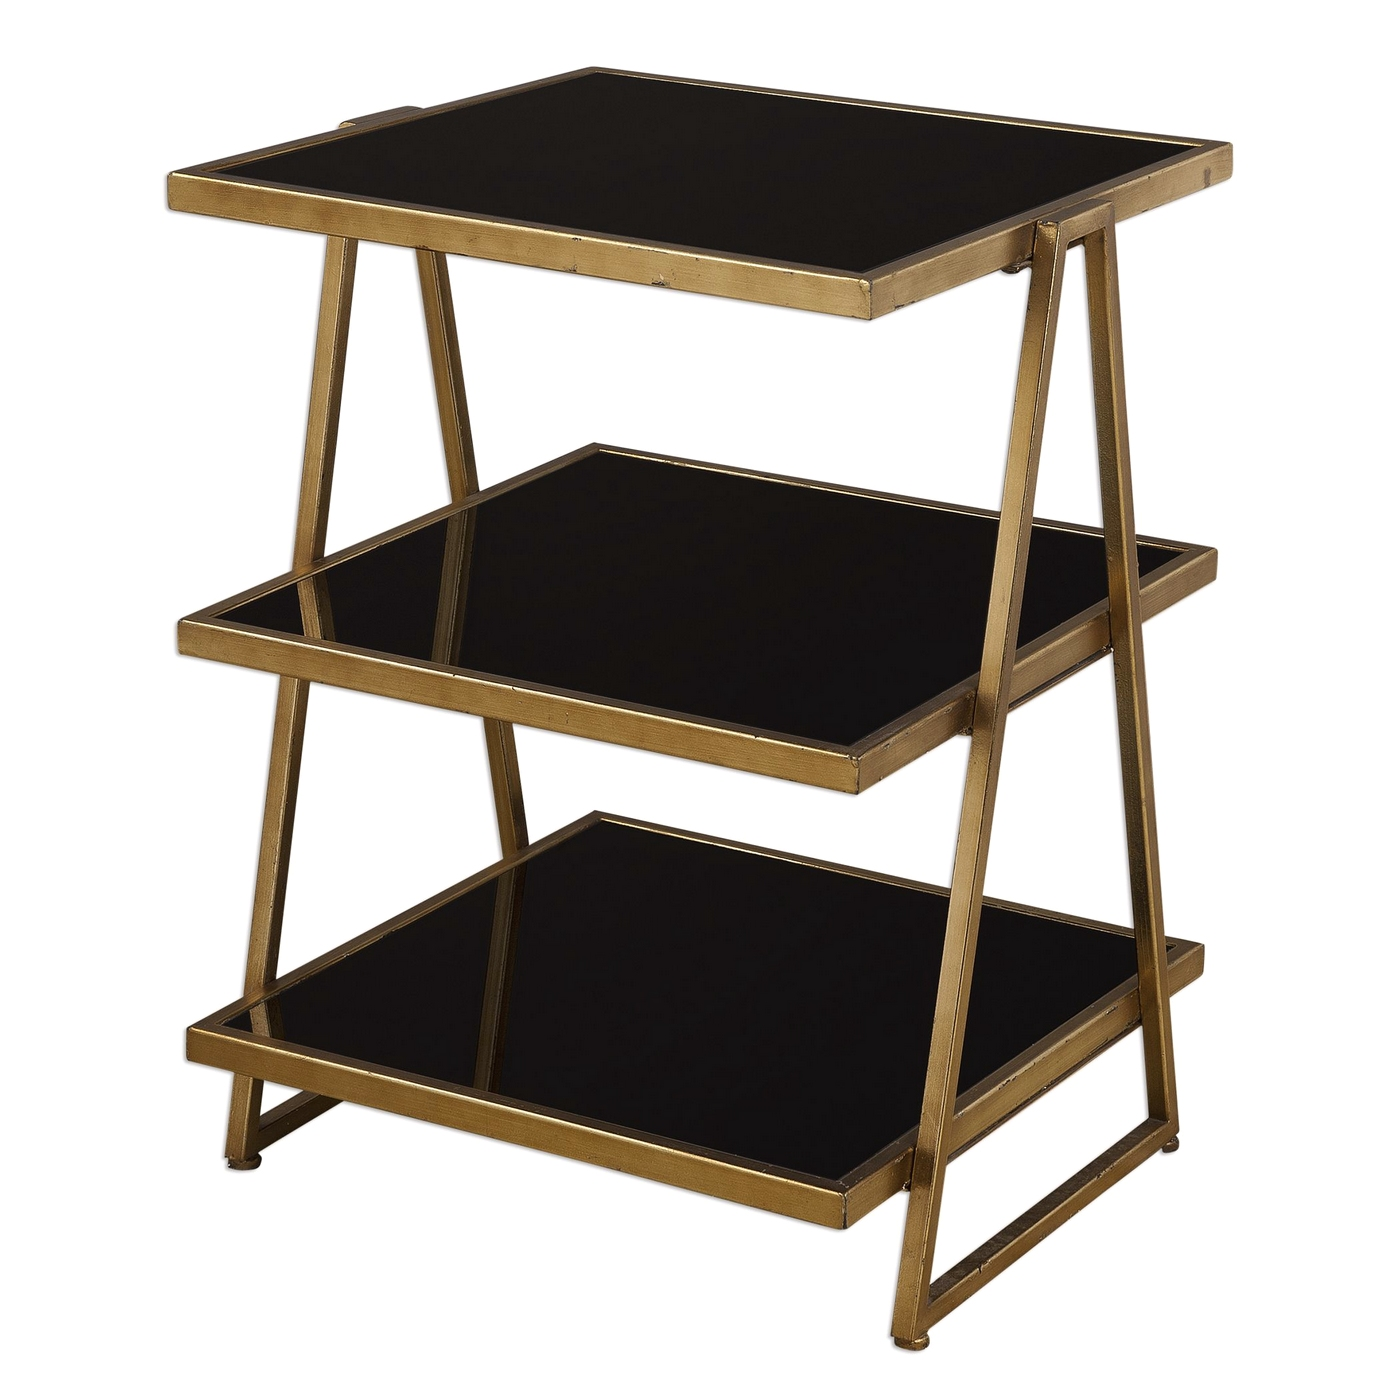 garrity tri level accent table gold leaf iron black tempered with glass shelves loading modern coffee tables edmonton wooden home decor woven outdoor furniture steel trestle